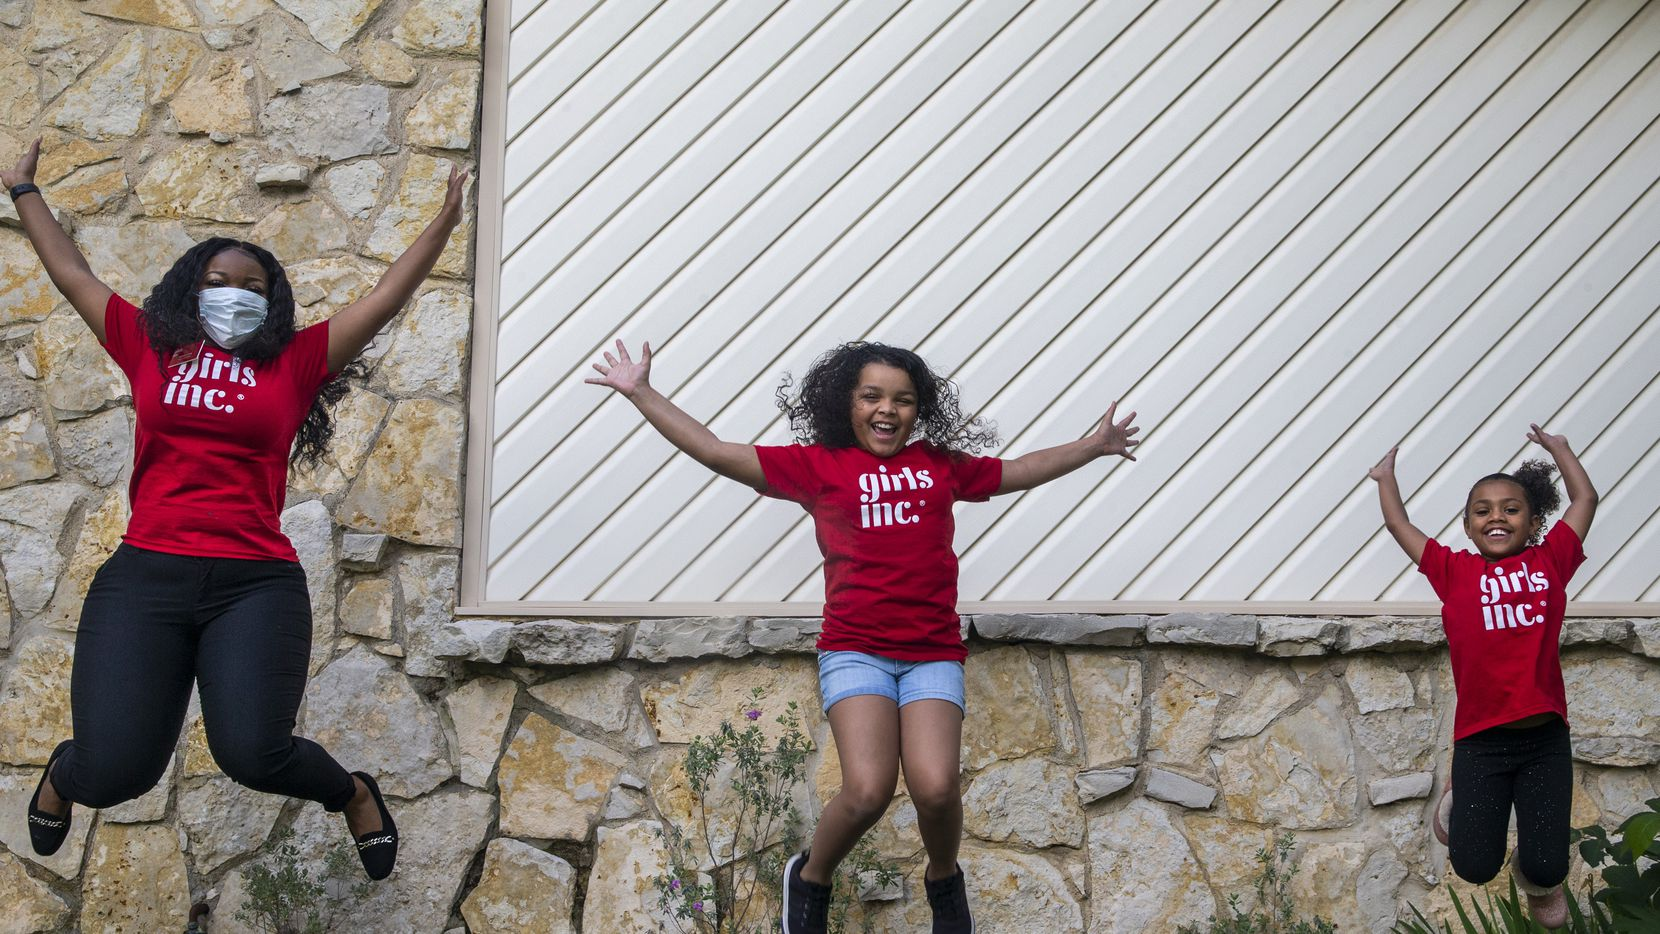 Natalie Cain (left), program facilitator for Girls Inc. of Metropolitan Dallas, enjoys a celebratory moment with two children who she mentors, sisters Aubrey Mendez (center), 10, and Destini King, 7, at the girls' home in North Dallas. Cain says she connects with the girls several times each week.